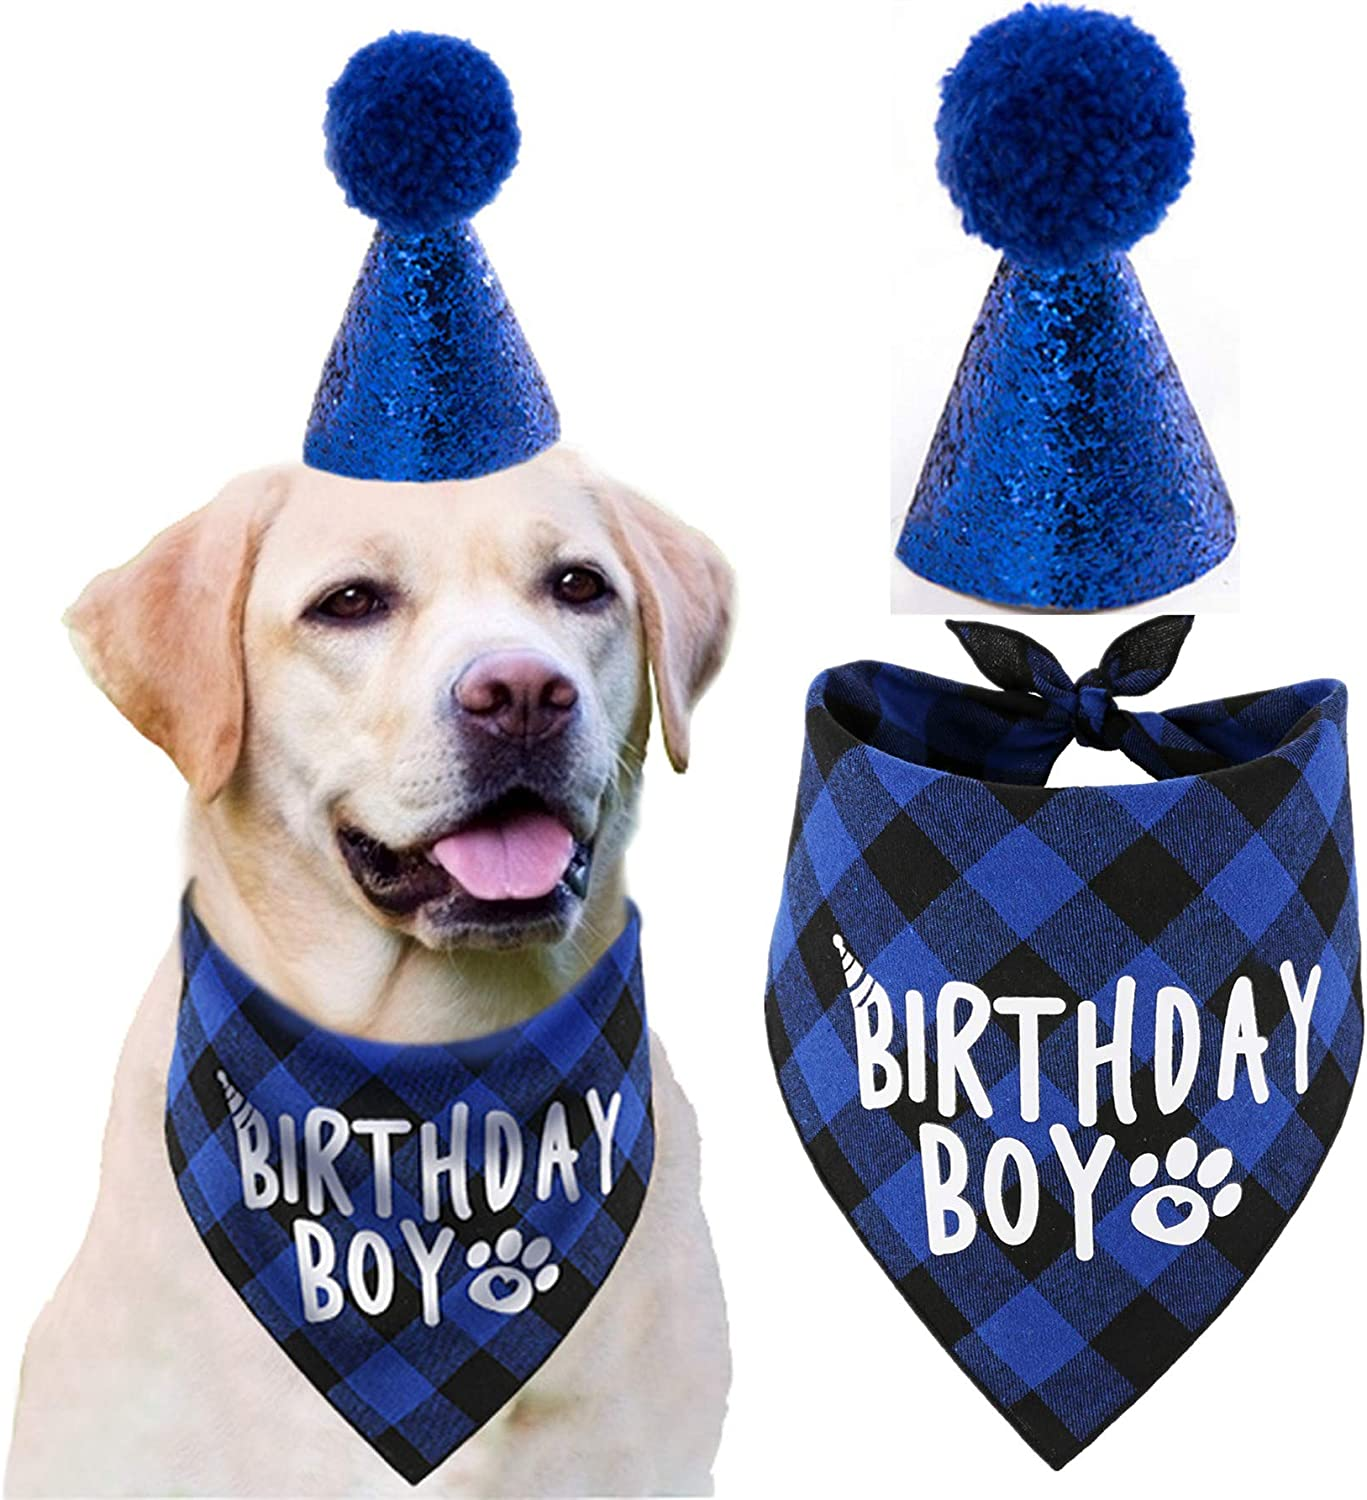 JPB Dog Birthday Party Supplies, Pet Birthday Hat and Boy Doggy Birthday Bandana Set : Pet Supplies